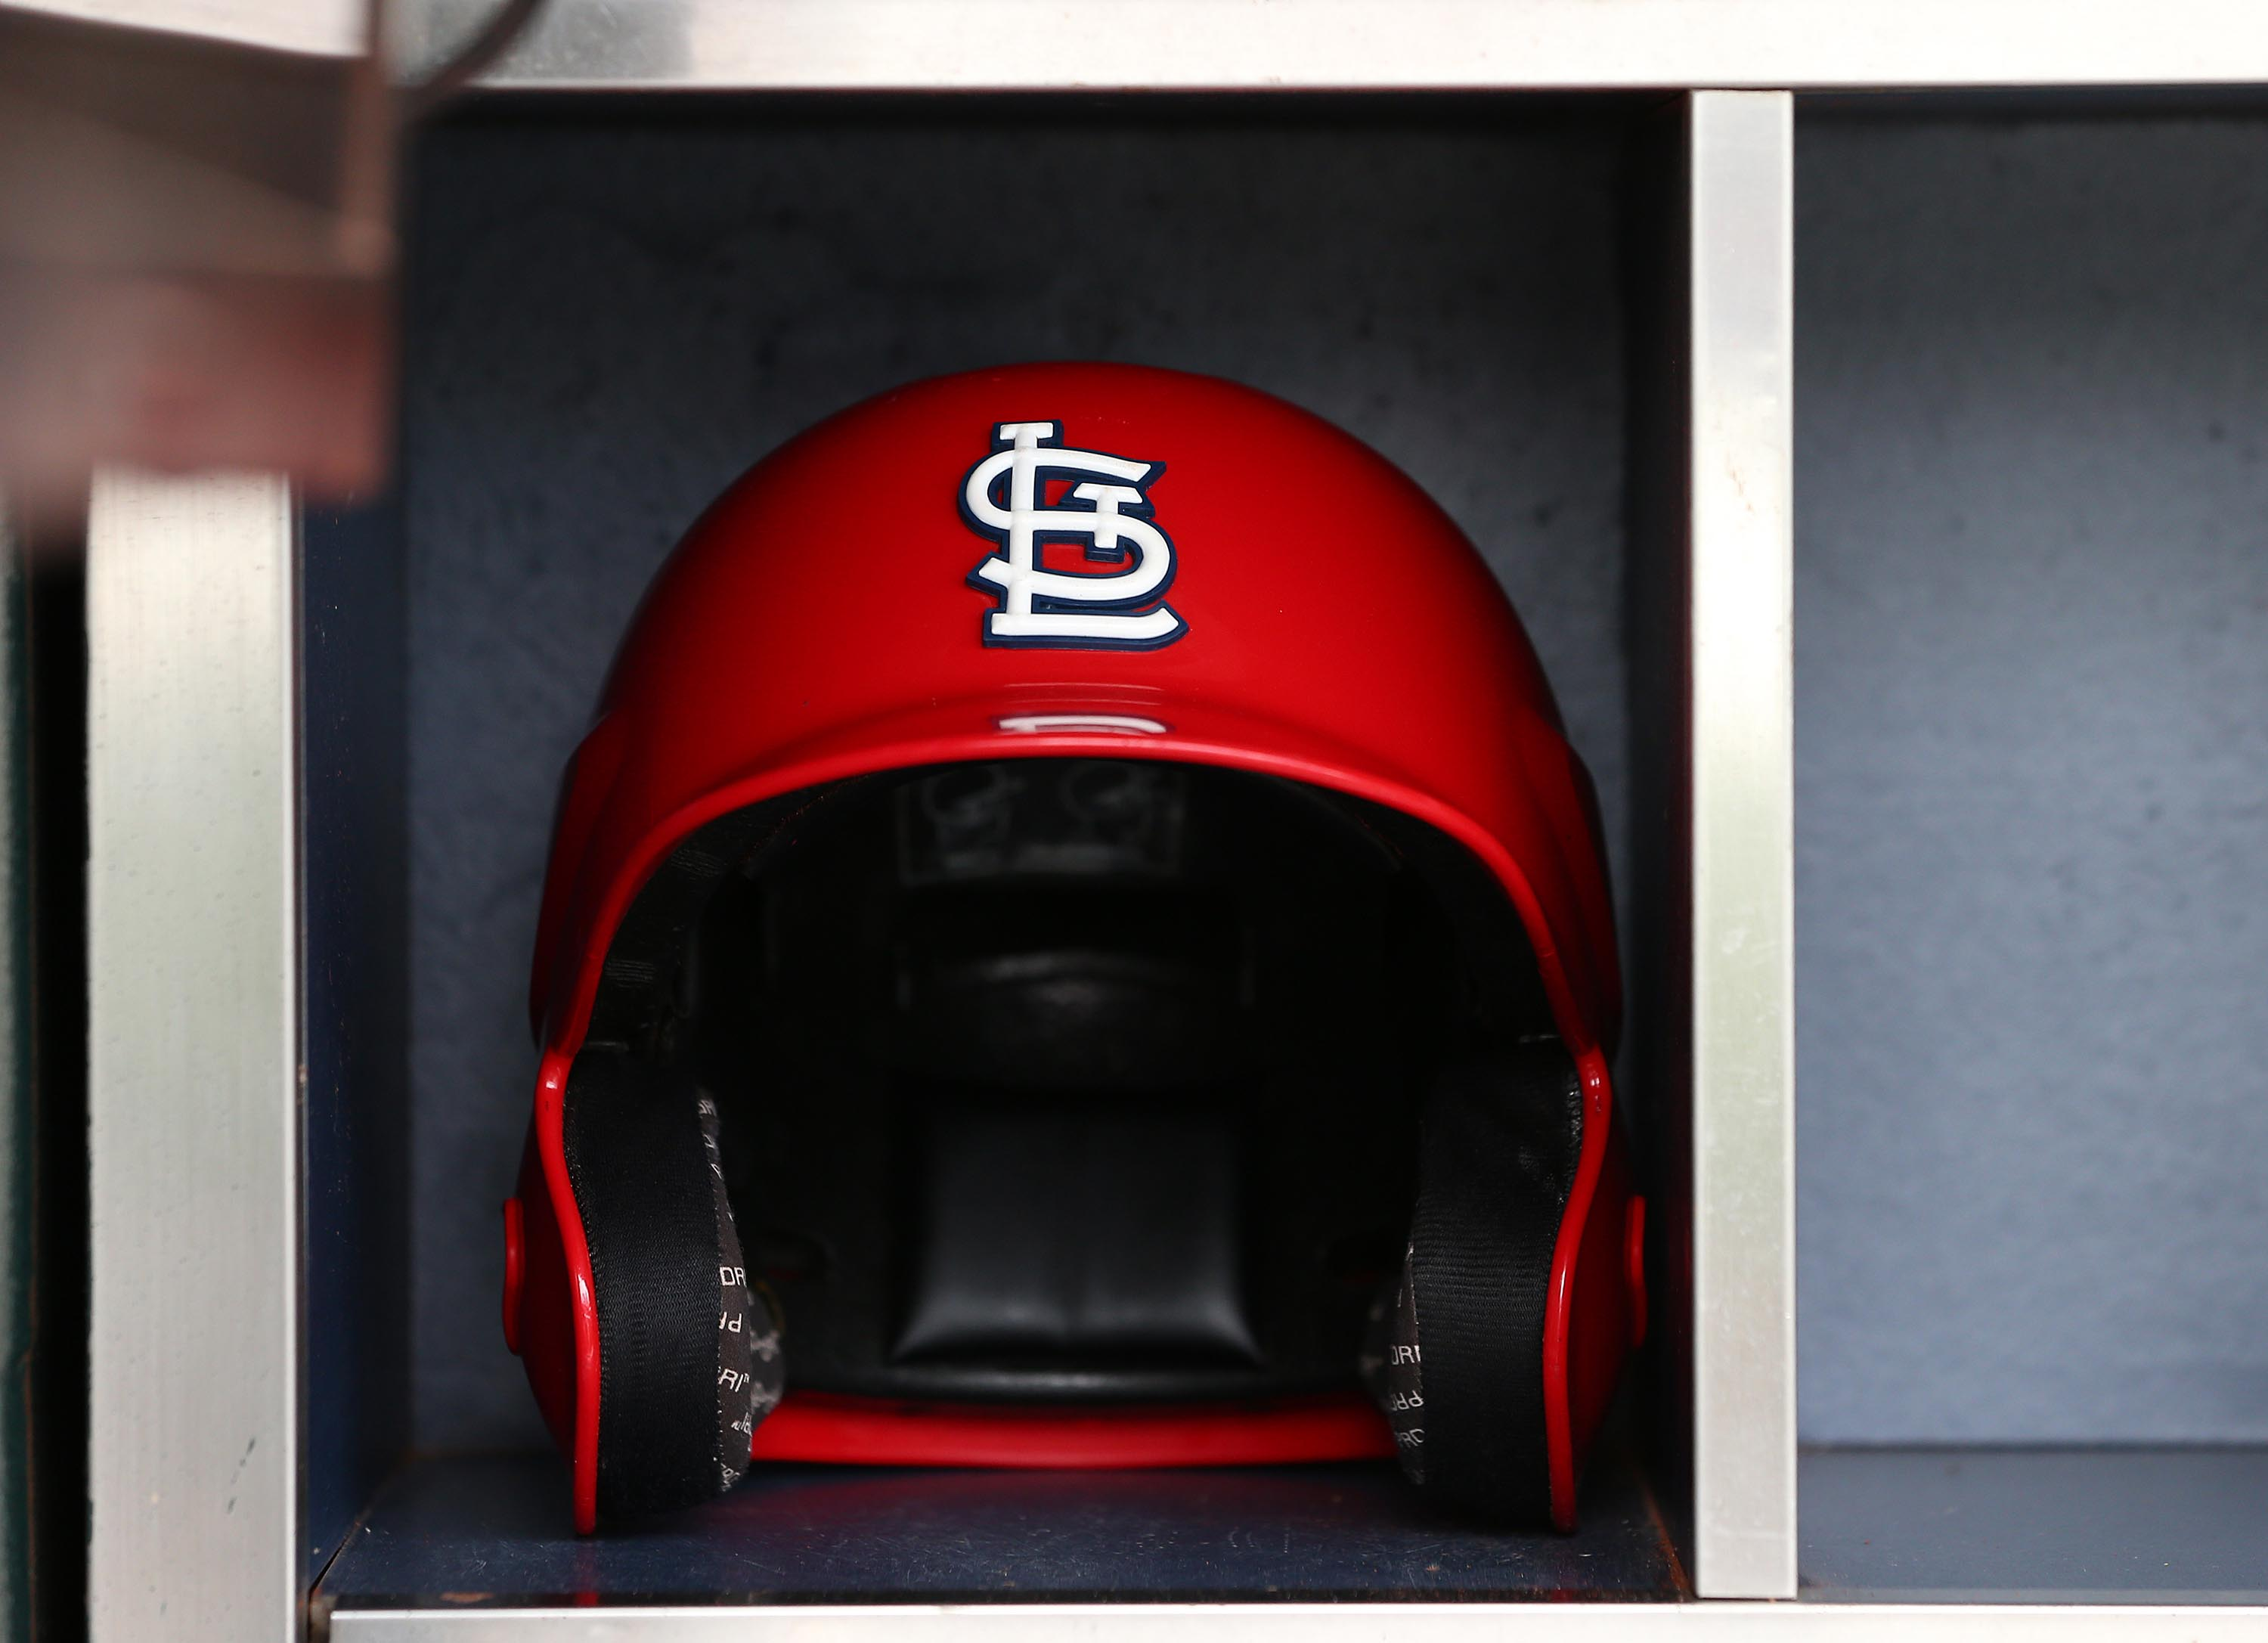 St. Louis Cardinals executive says there's no proof players went to a casino prior to outbreak